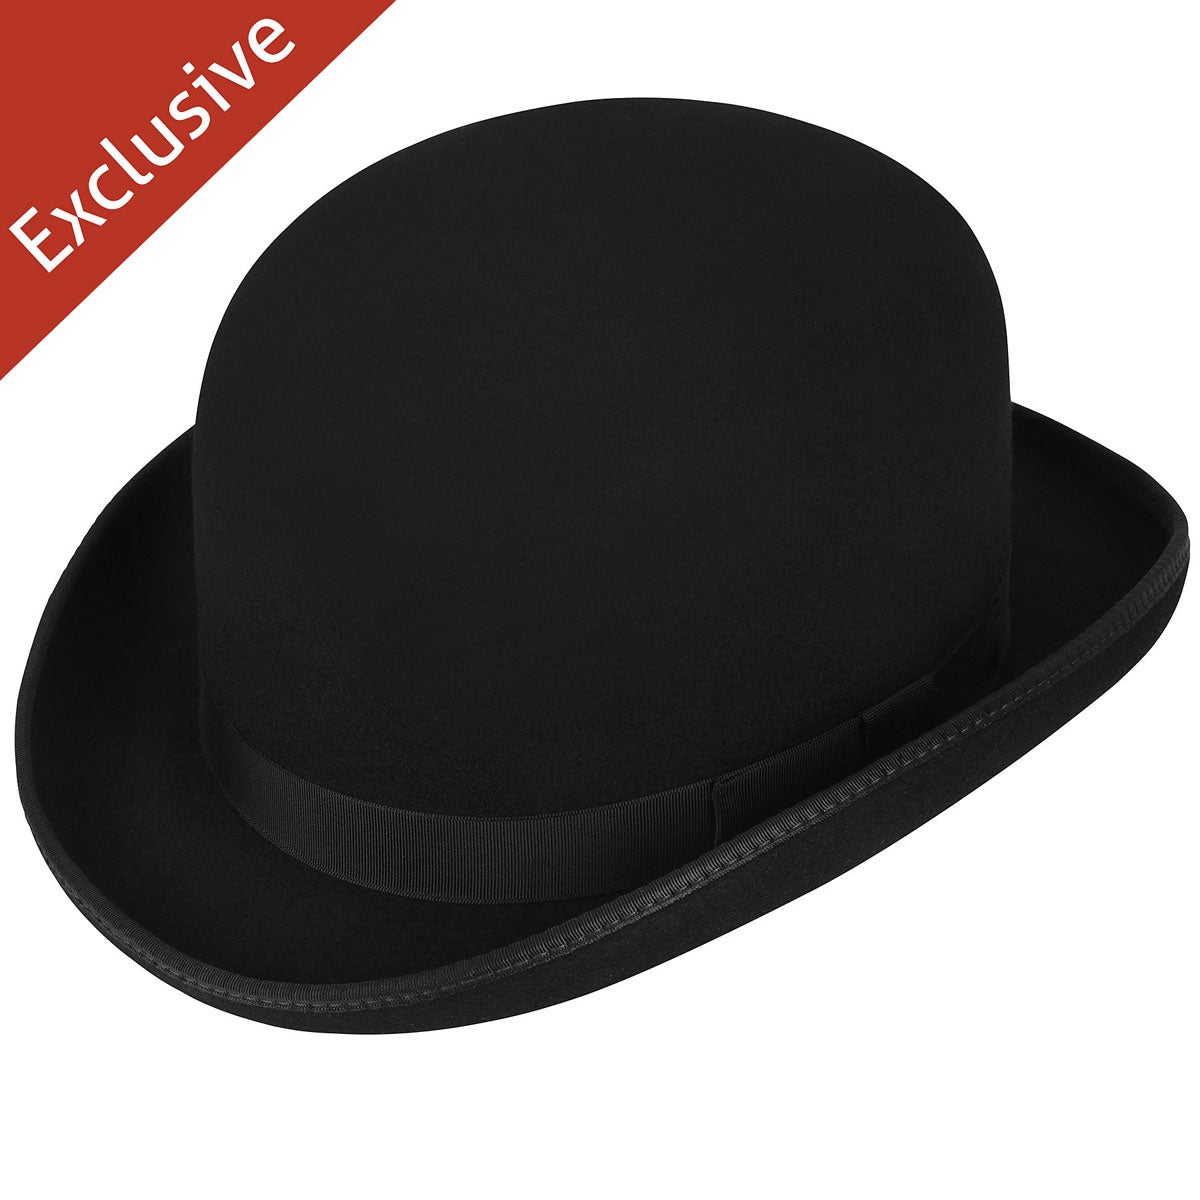 Victorian Men's Clothing, Fashion – 1840 to 1890s Steed Derby Hat - Exclusive $39.99 AT vintagedancer.com